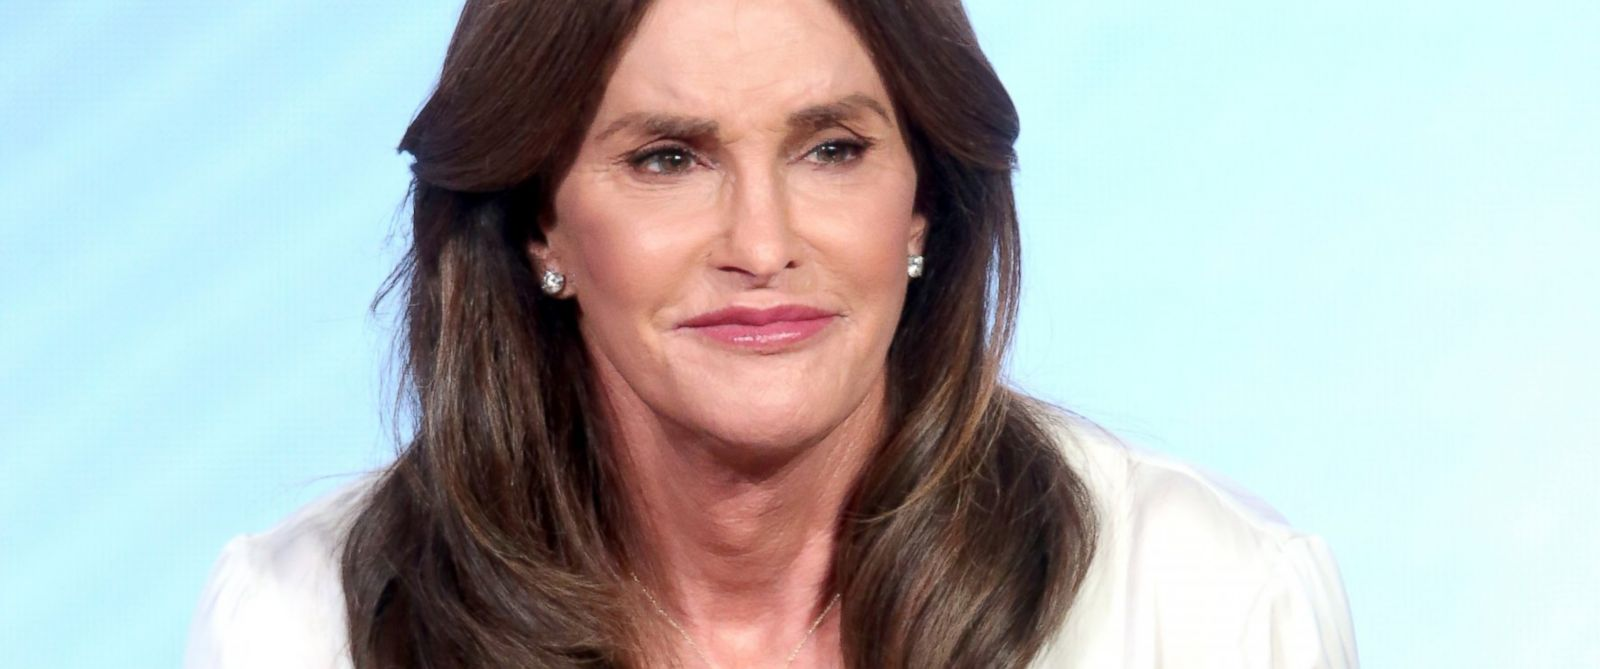 PHOTO: Caitlyn Jenner speaks onstage during the I Am Cait panel discussion, Jan. 14, 2016, in Pasadena, Calif.